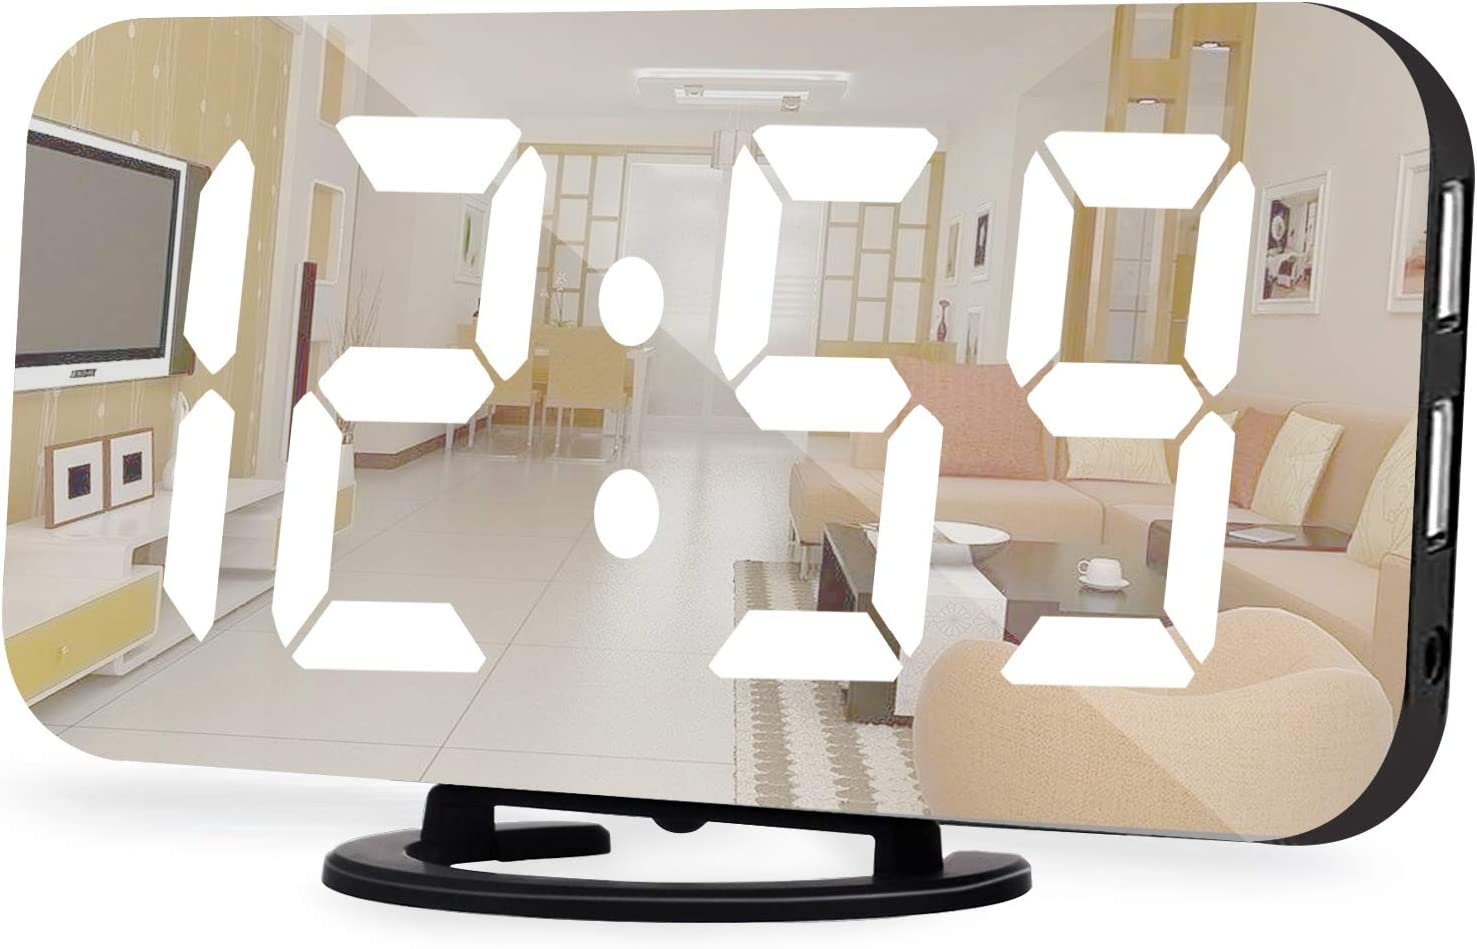 Digital Alarm Clock,6.5 Inch LED Mirror Electronic Clocks,with 2 USB Charging Ports,Snooze,12/24H,3 Adjustable Brightness,for Bedroom Home Office (Black)